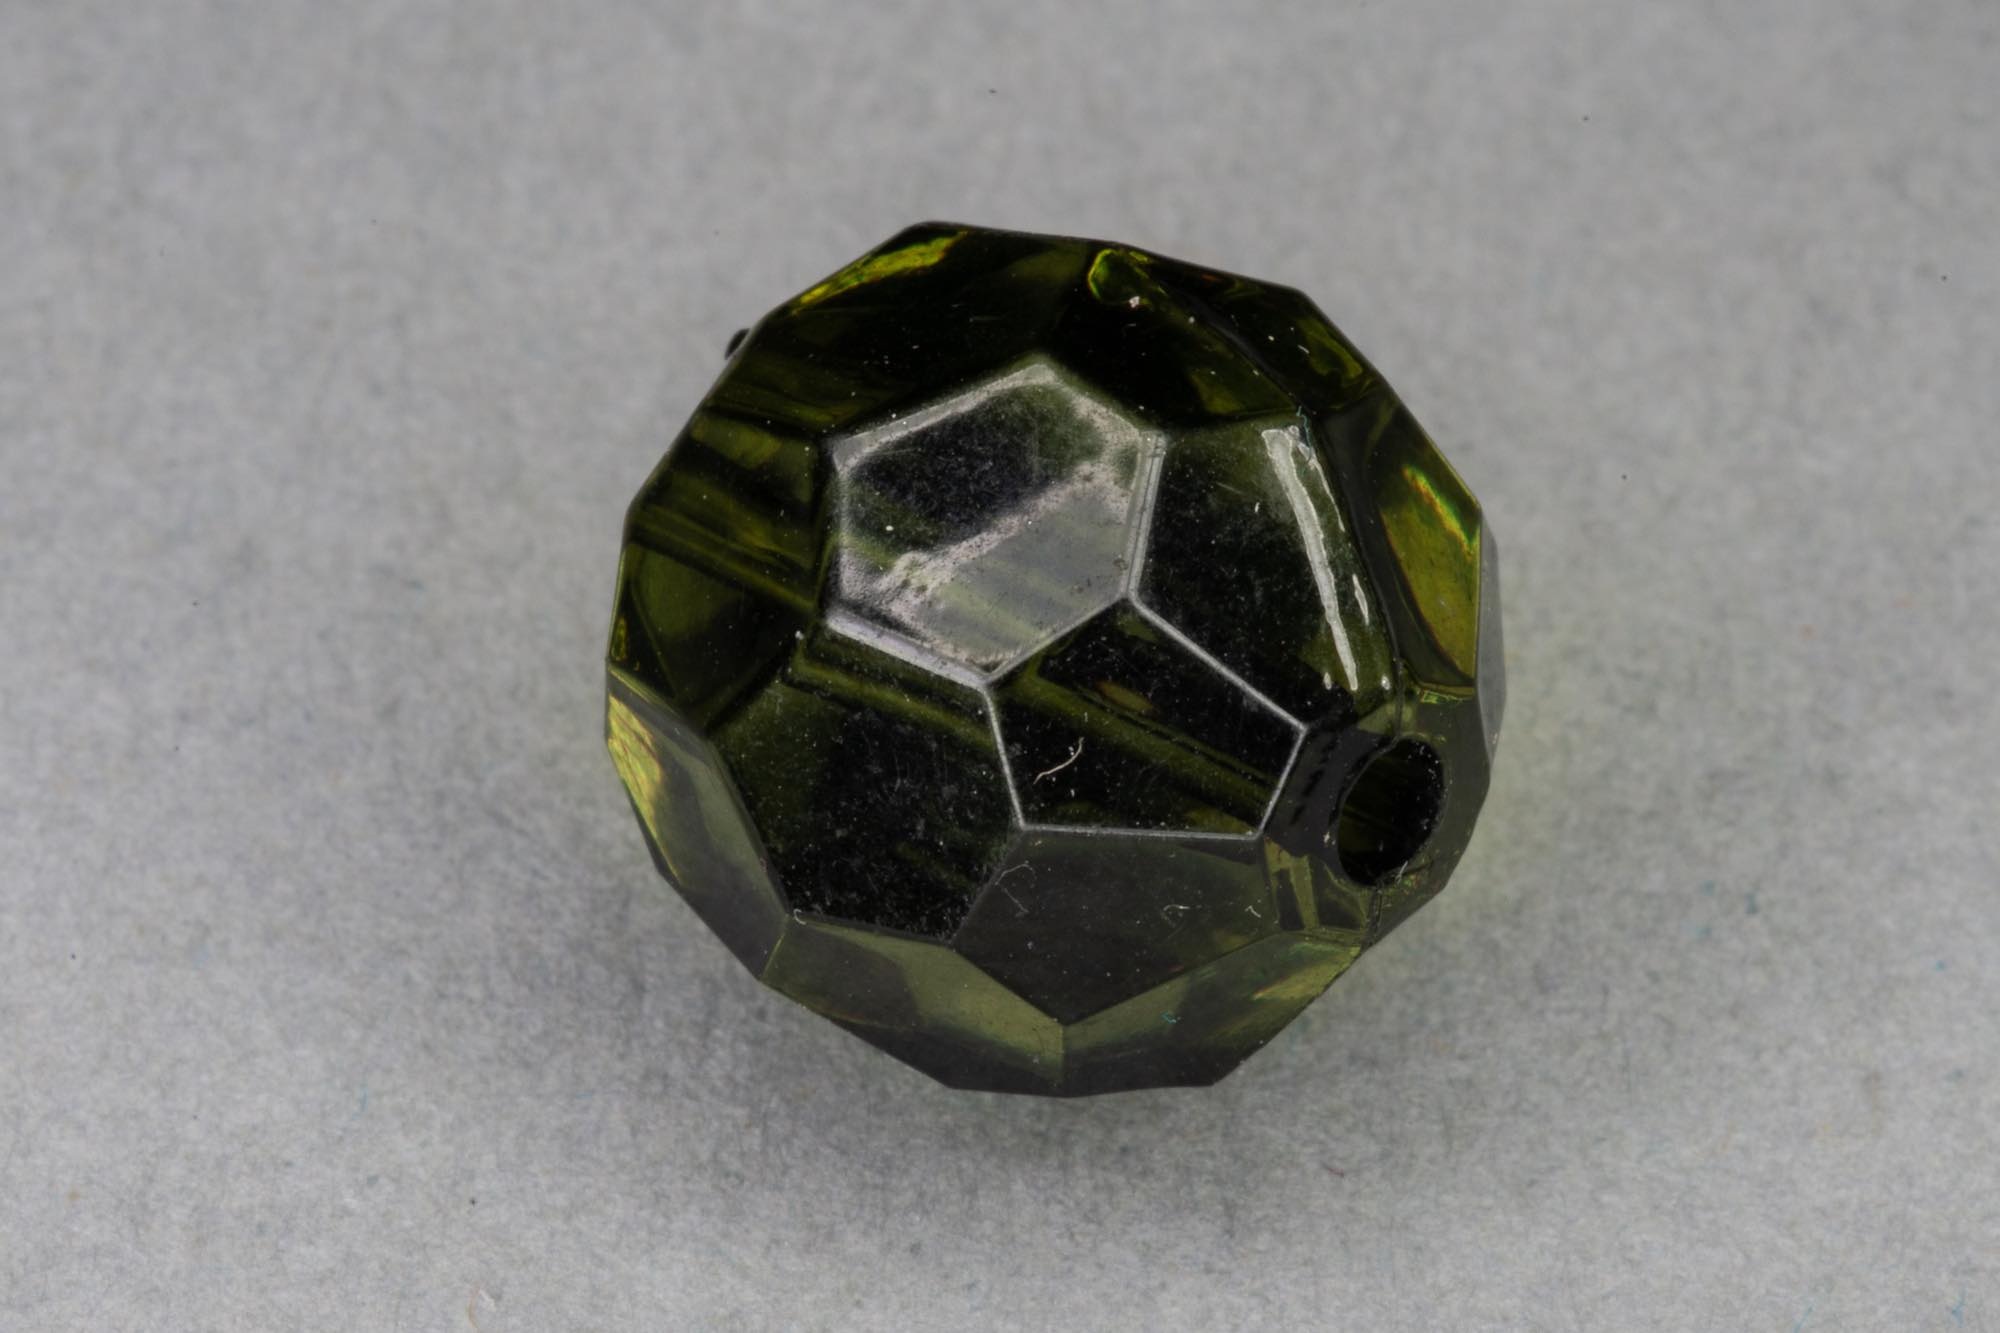 Olive Faceted Transparent Acrylic Bead, 1.5mm hole